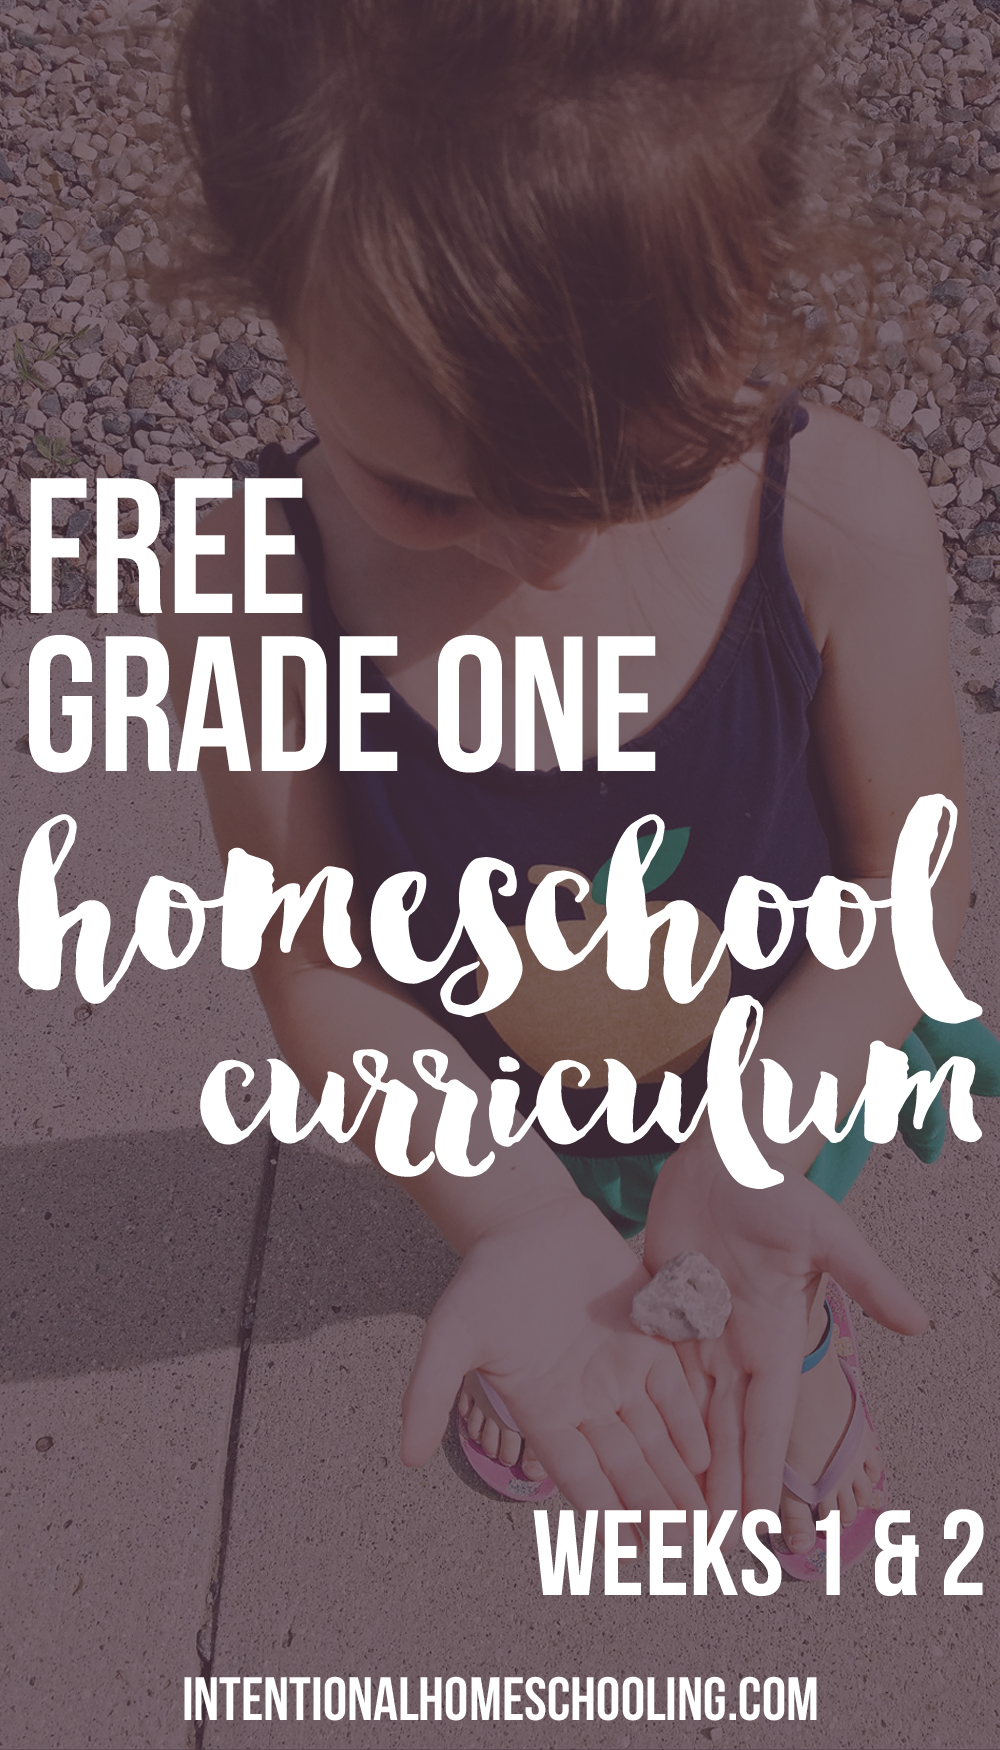 Our Homemade Grade One Homeschool Curriculum - Weeks 1 & 2 - includes Bible, writing, reading, math, science, history, geography, art and music!